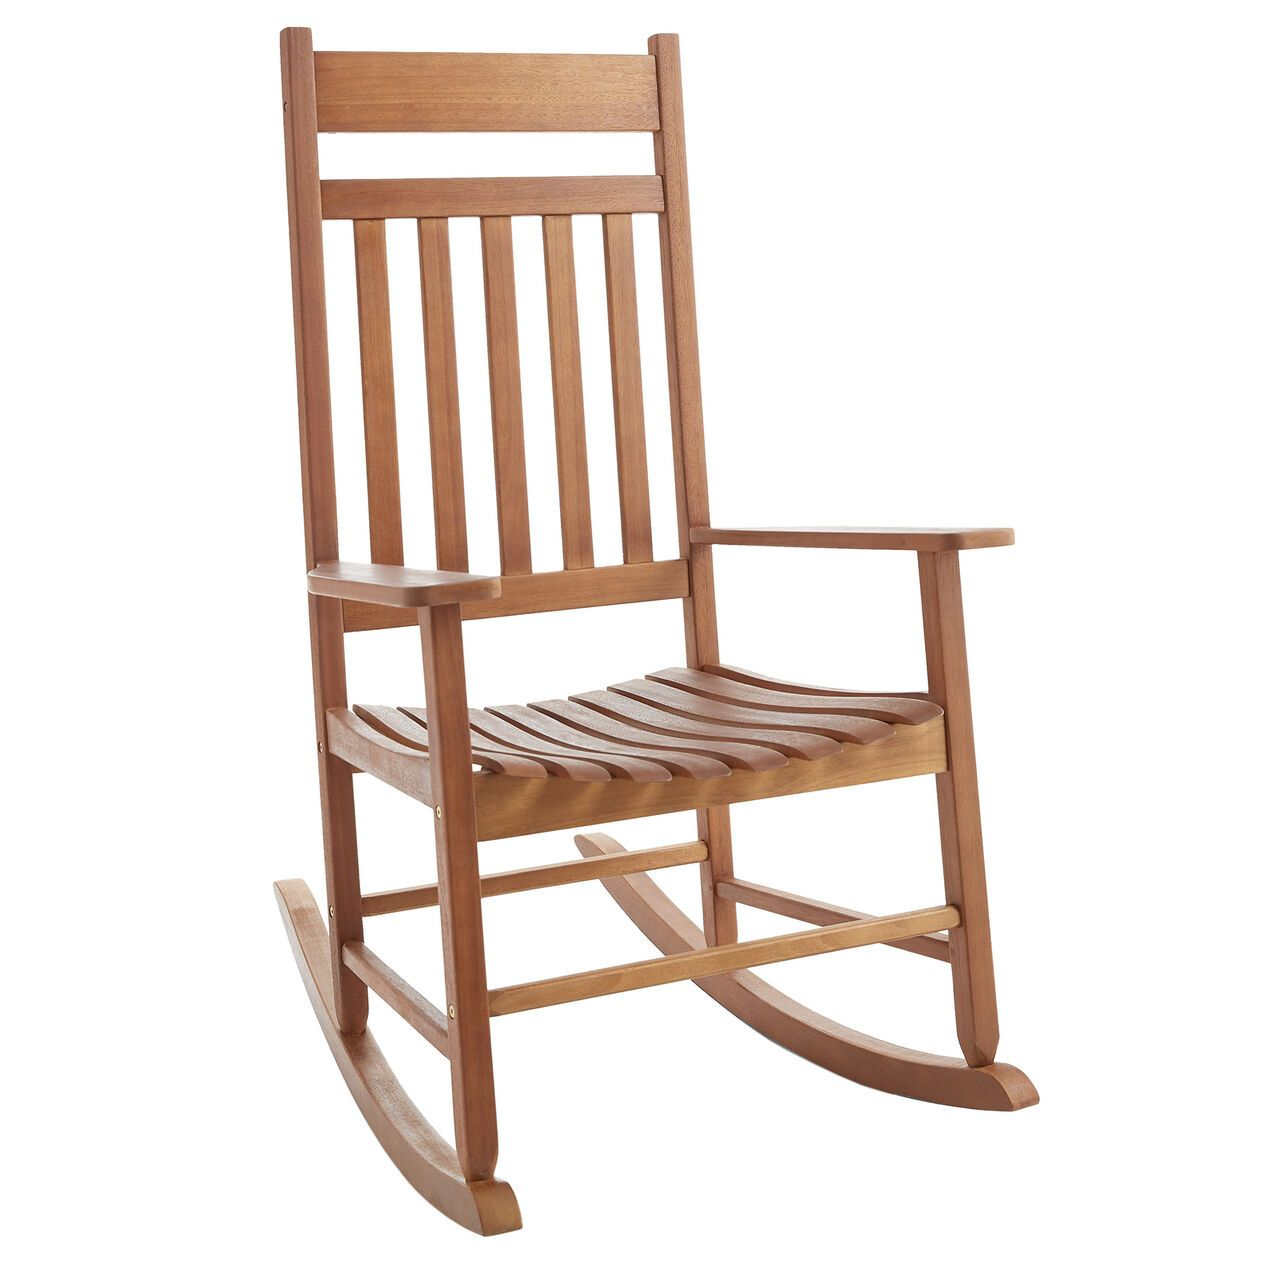 Wooden Rocking Chair At Home In 2020 Wooden Rocking Chairs Rocking Chair Patio Chairs